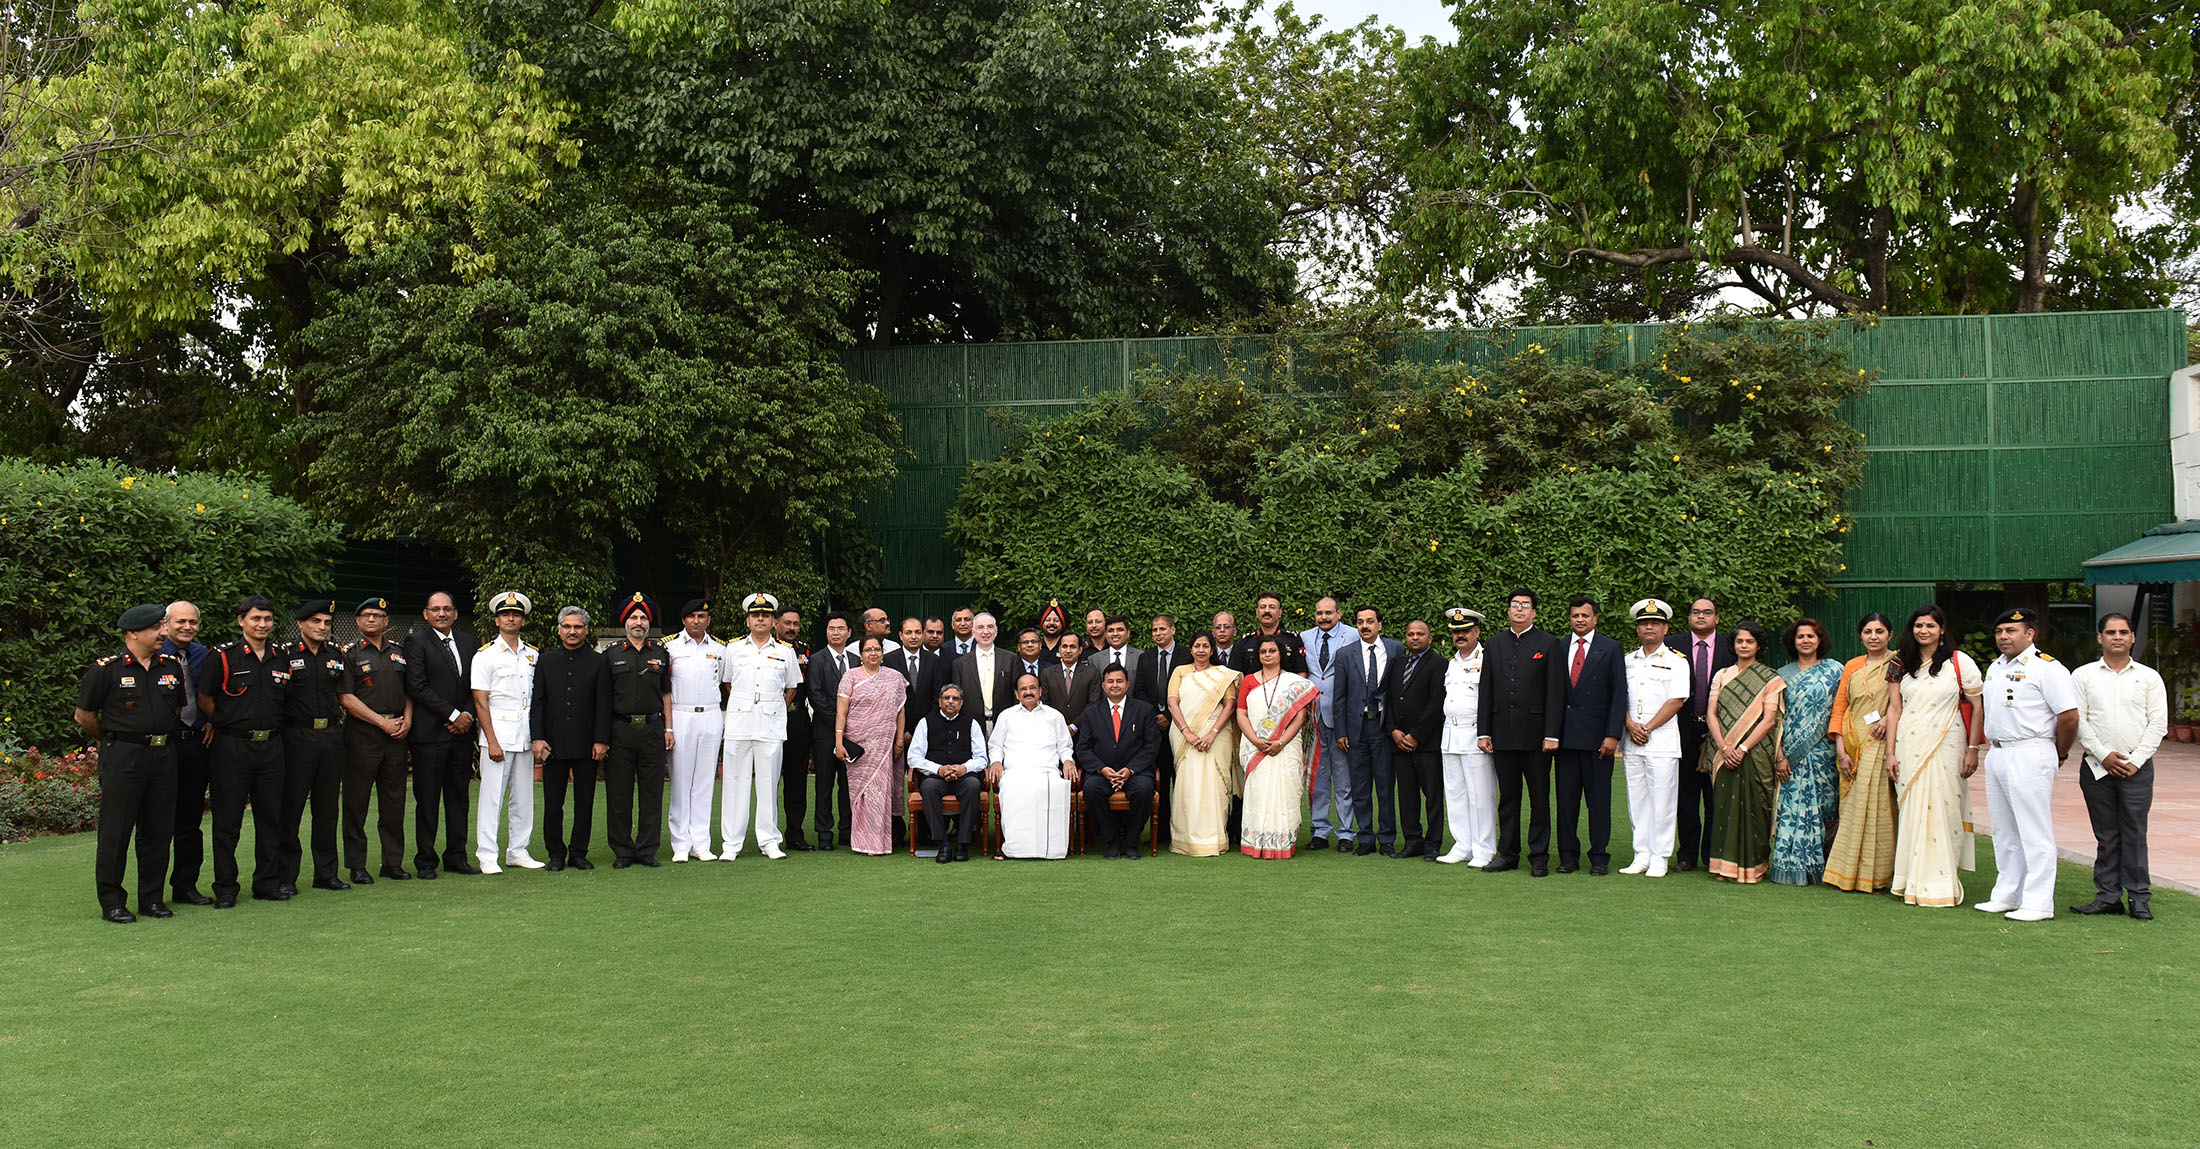 The Vice President, Shri M. Venkaiah Naidu with the 44th batch of Advance Professional Programme in Public Administration, sponsored by the Indian Institute of Public Administration, in New Delhi on April 15, 2019.